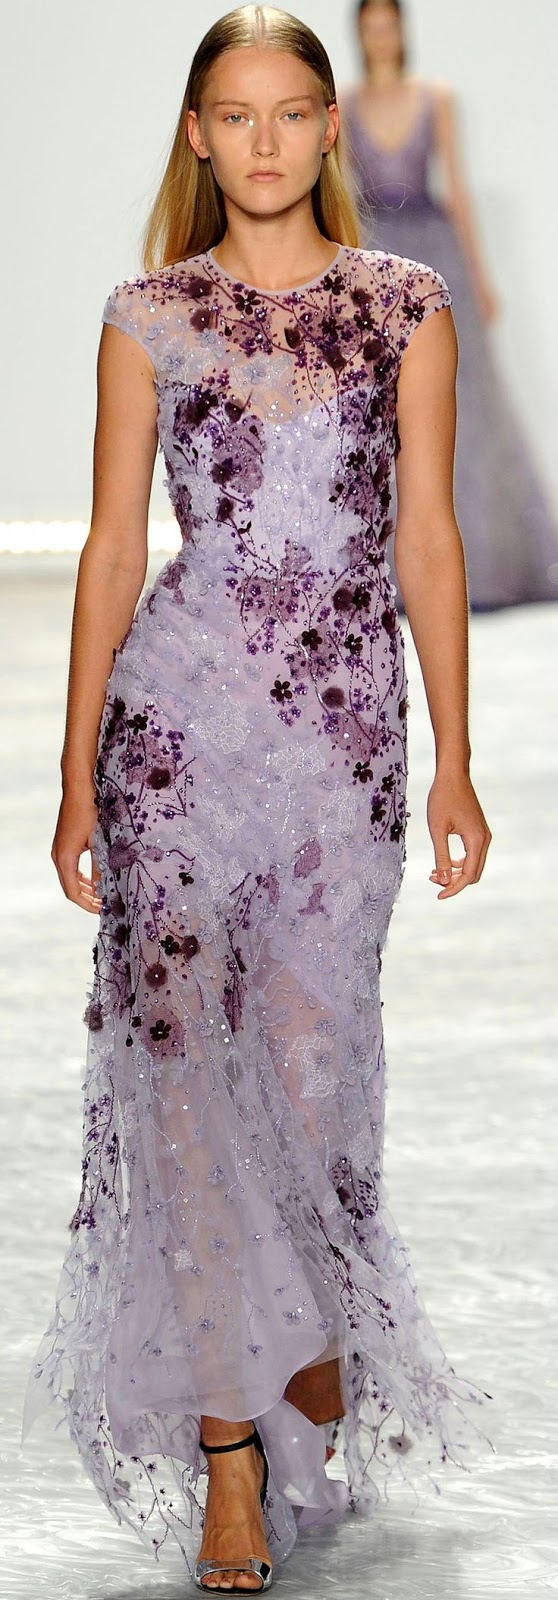 Monique Lhuillier 2015, dresses, purple dress